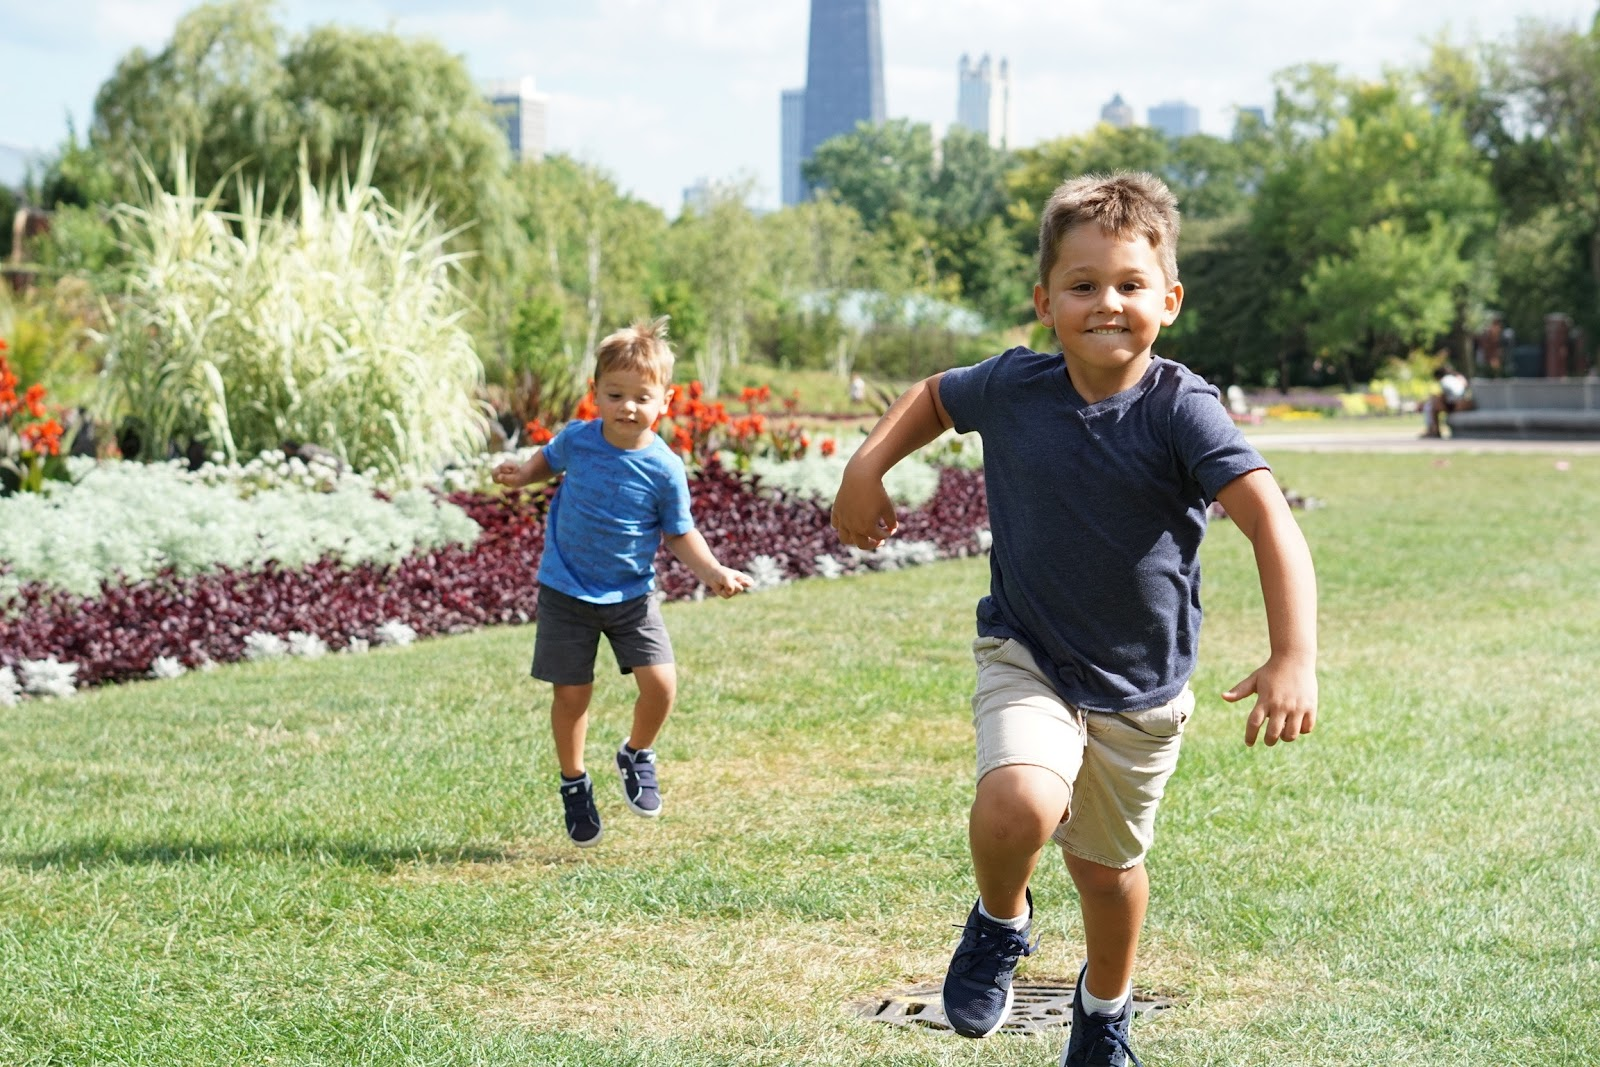 10 Fun Activities To Do With The Kids This Summer